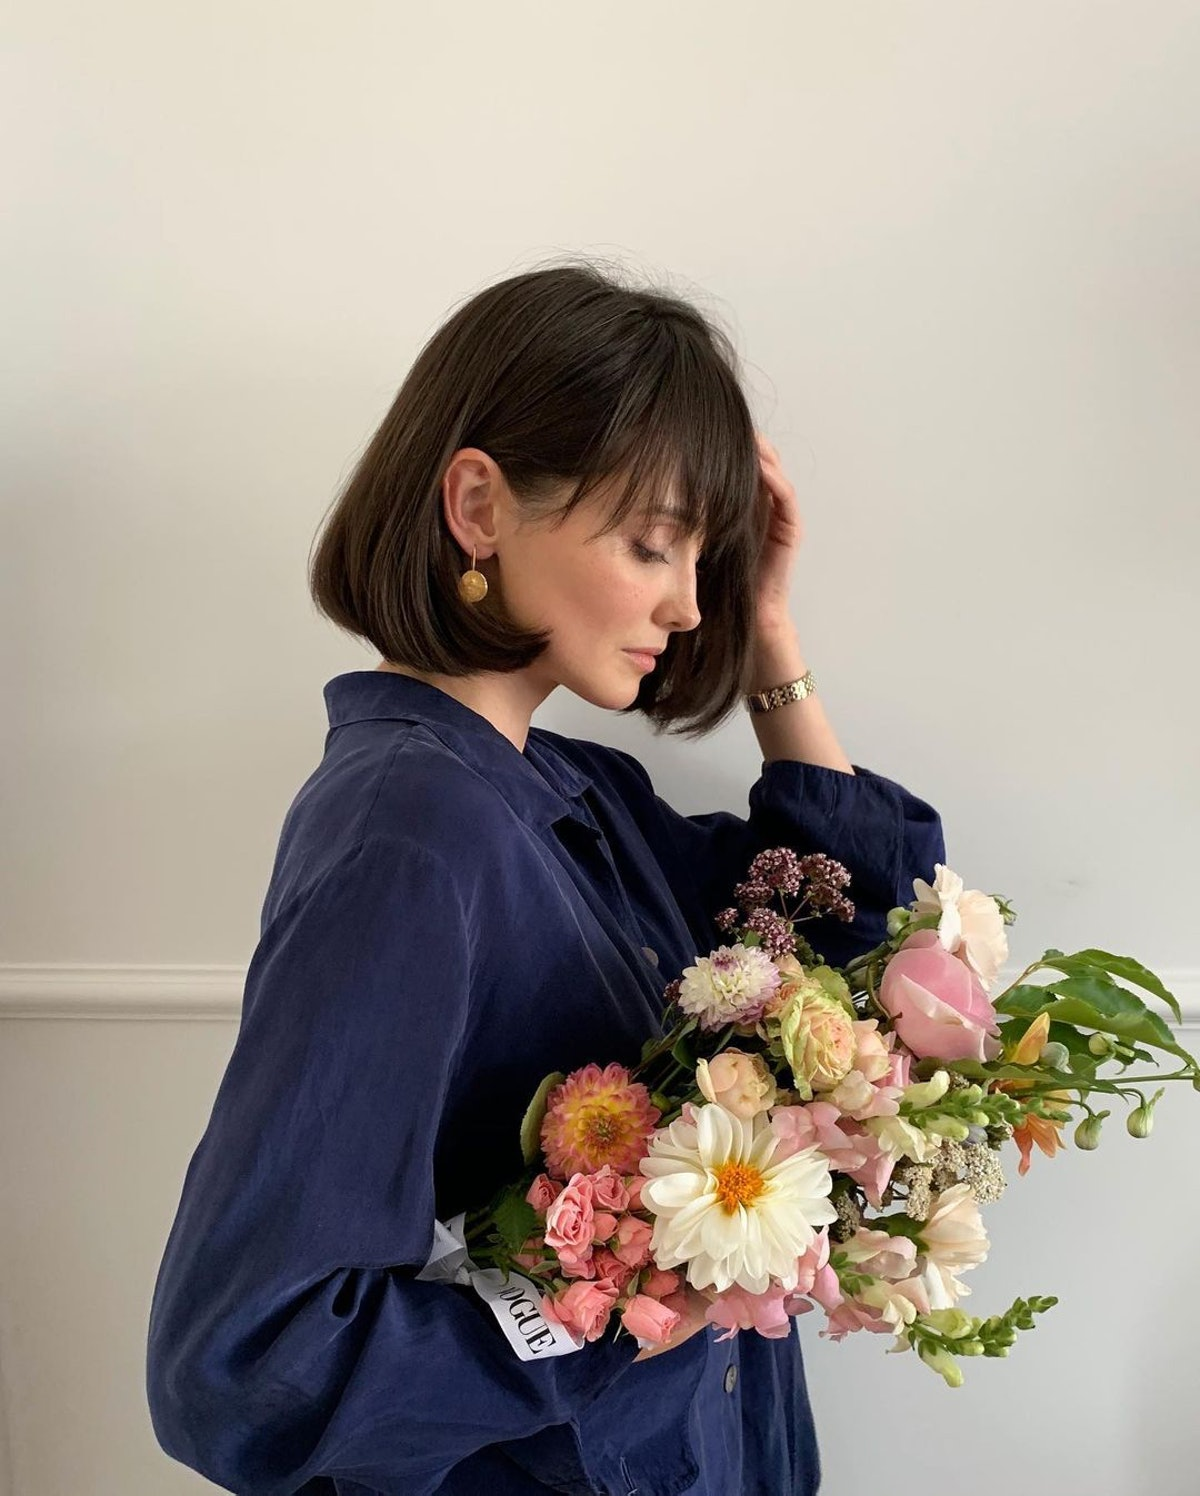 Woman holding flowers with short hair